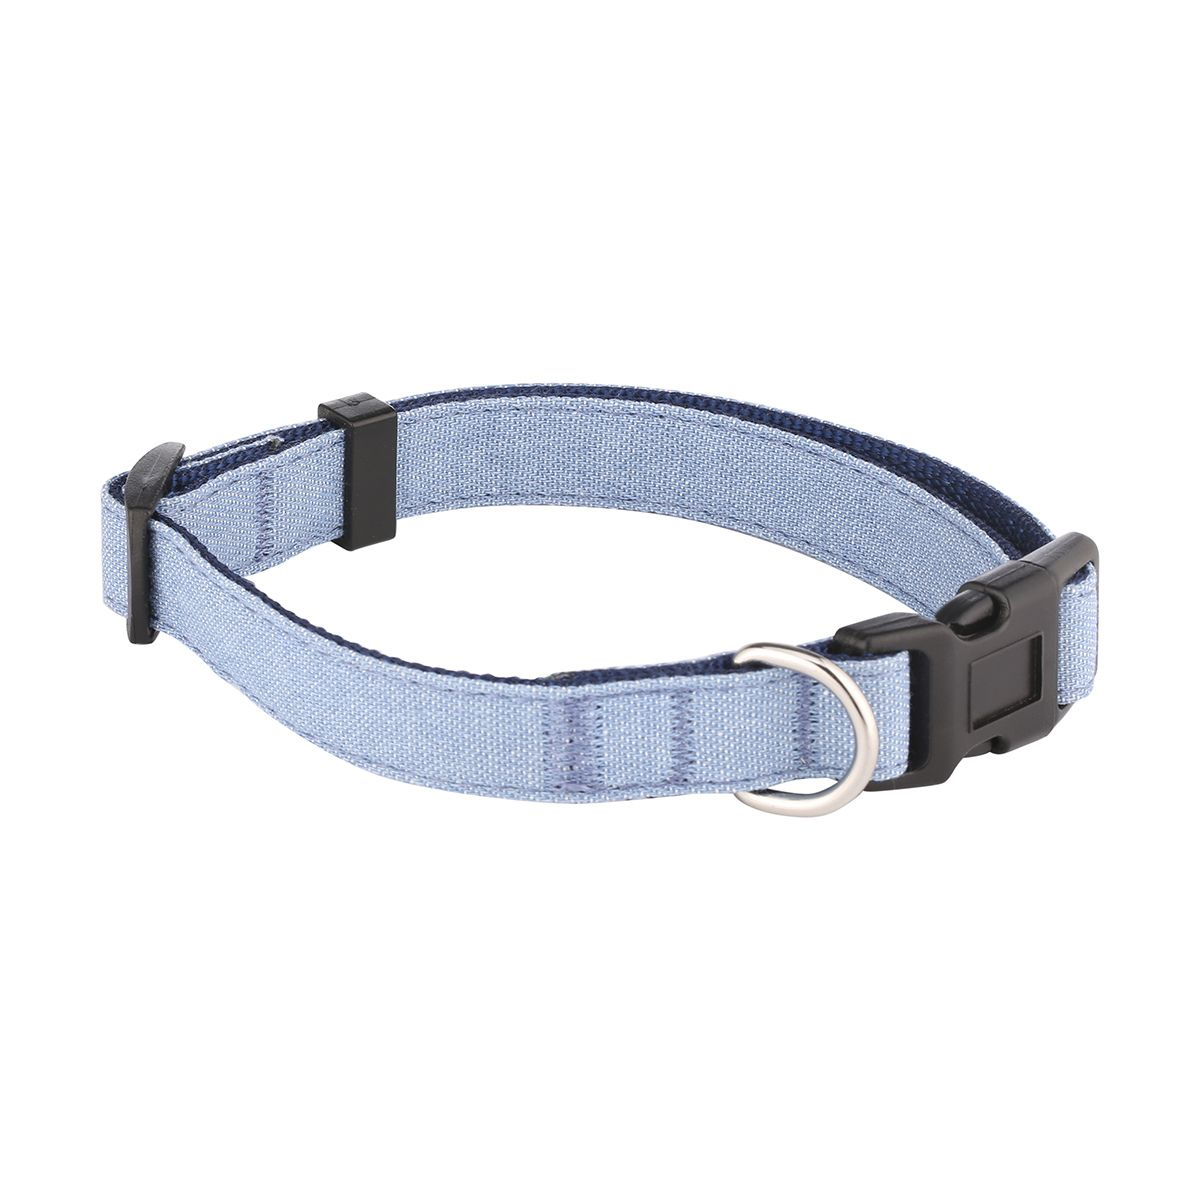 Dog Collar Small Blue Kmart Blue Dogs Accessories